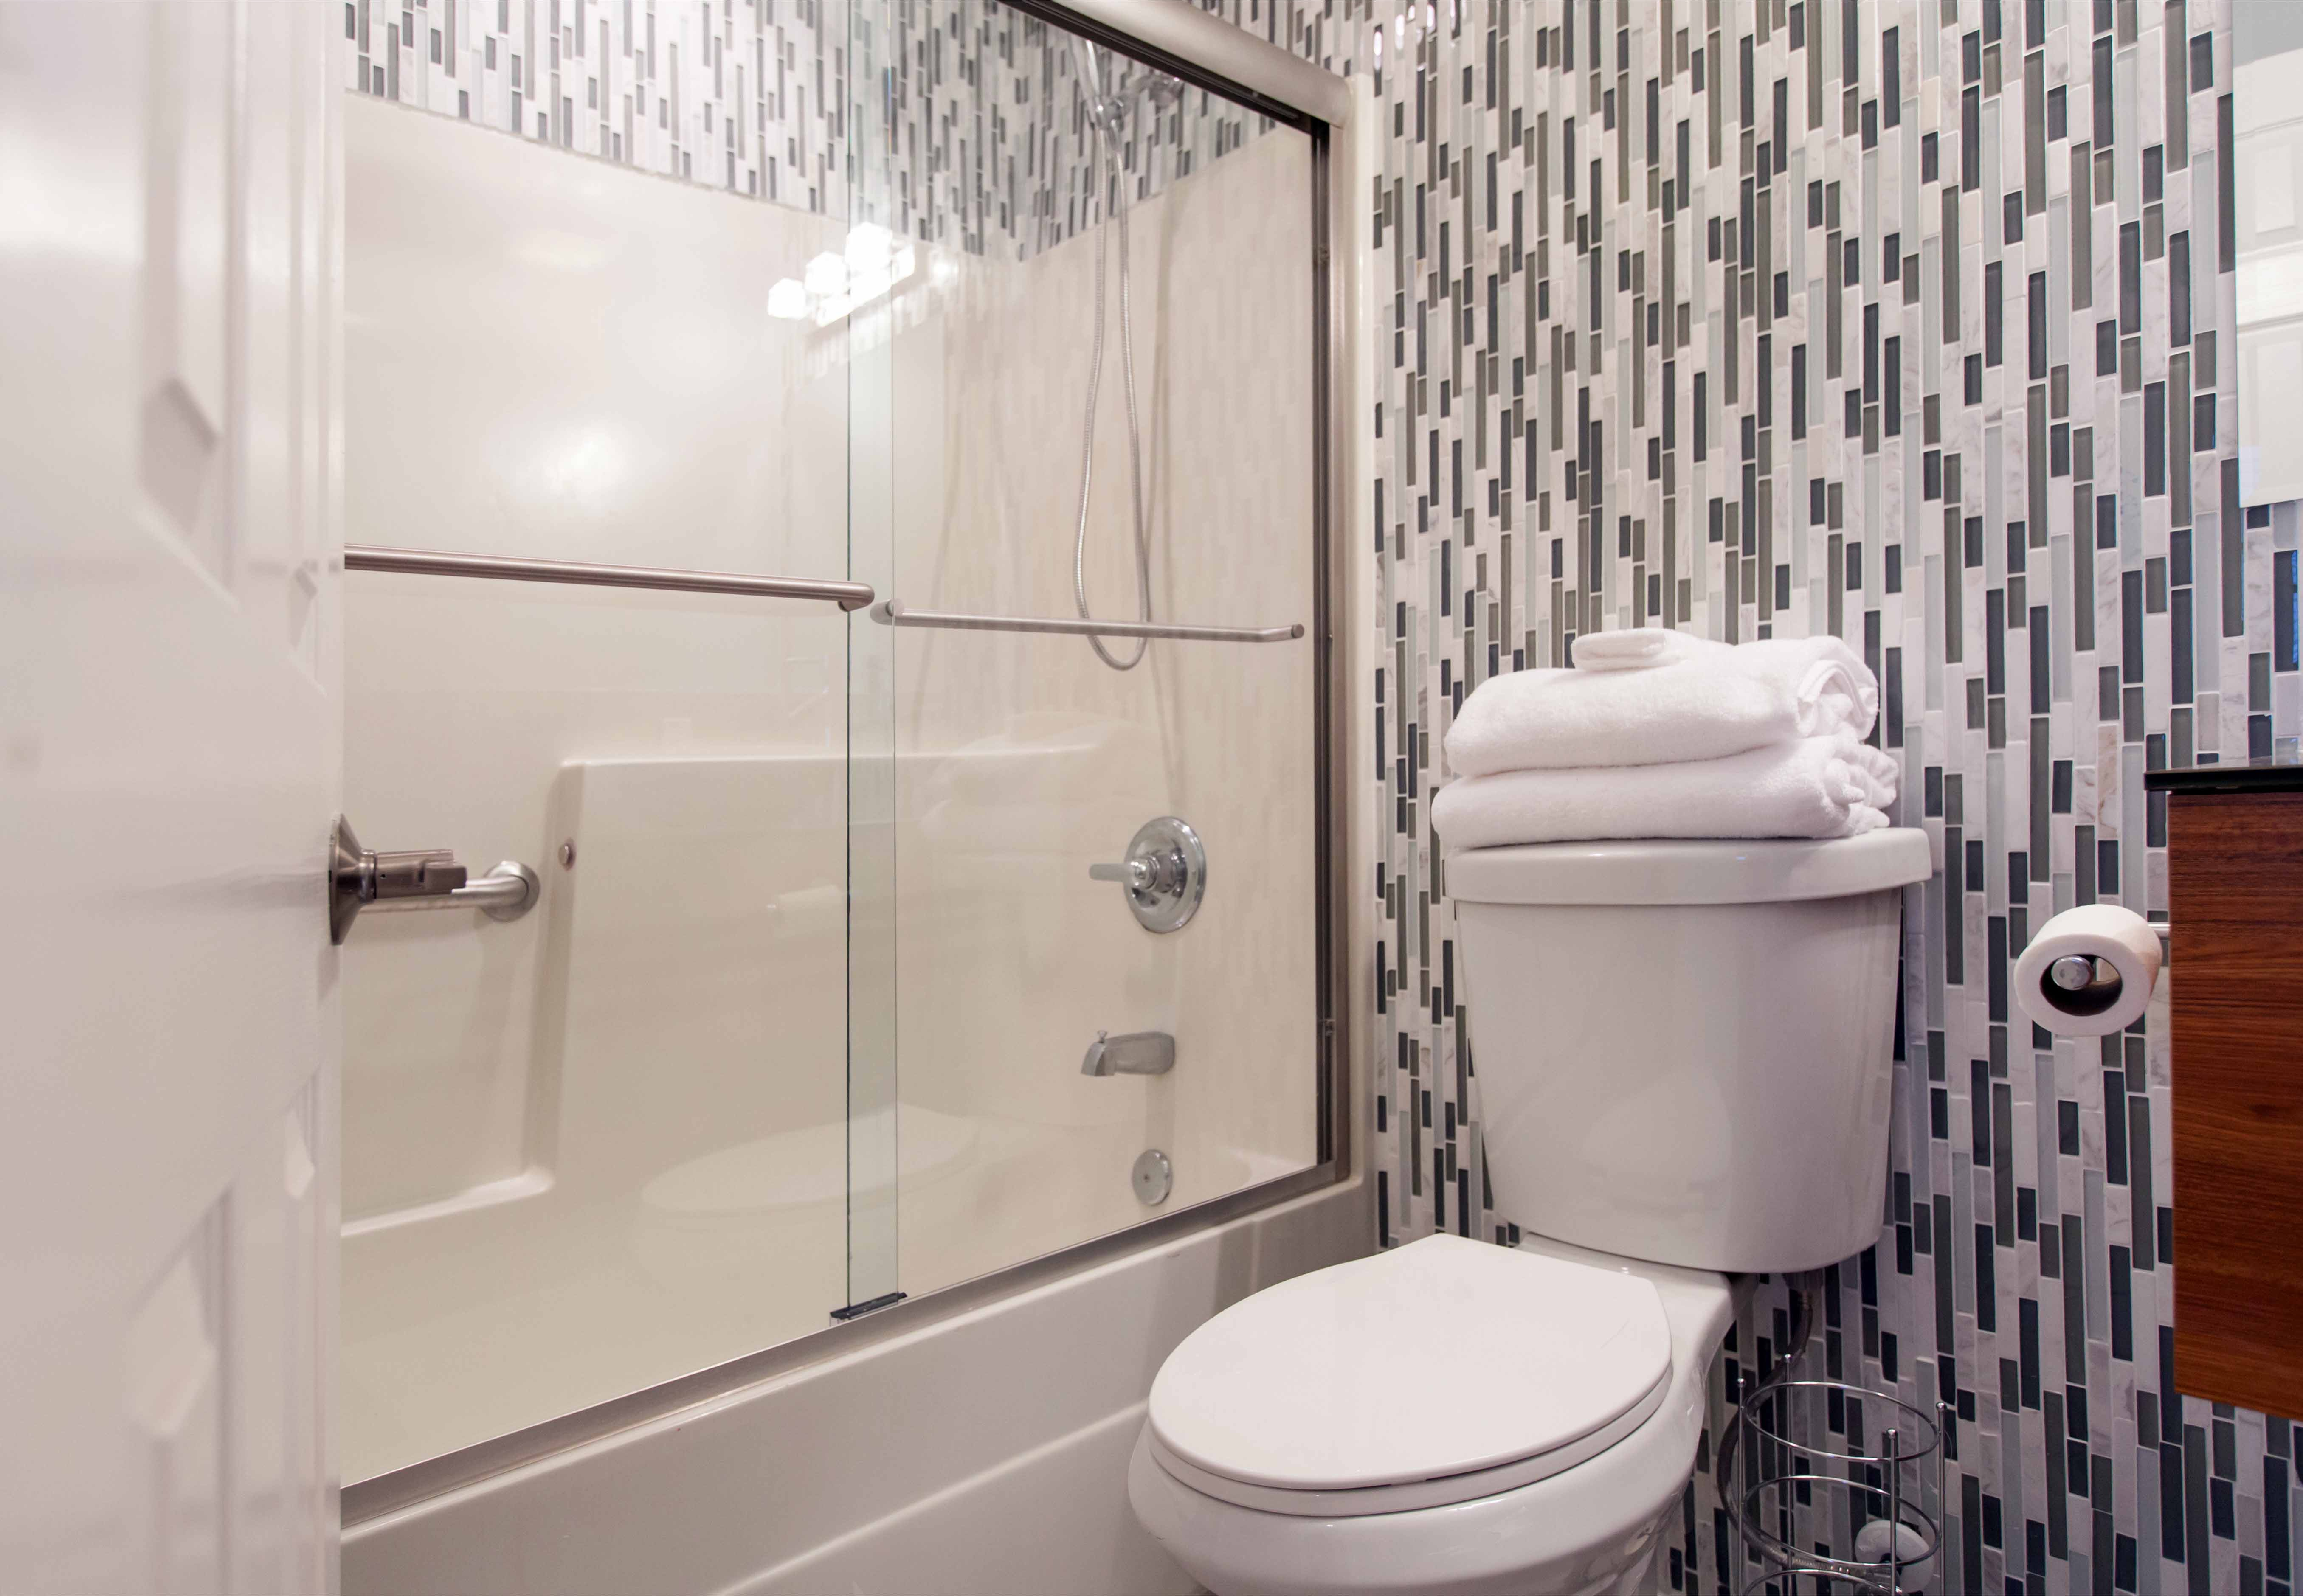 Small Bathroom Renovation With Shower And Bathtub Combo (Image 10 of 17)